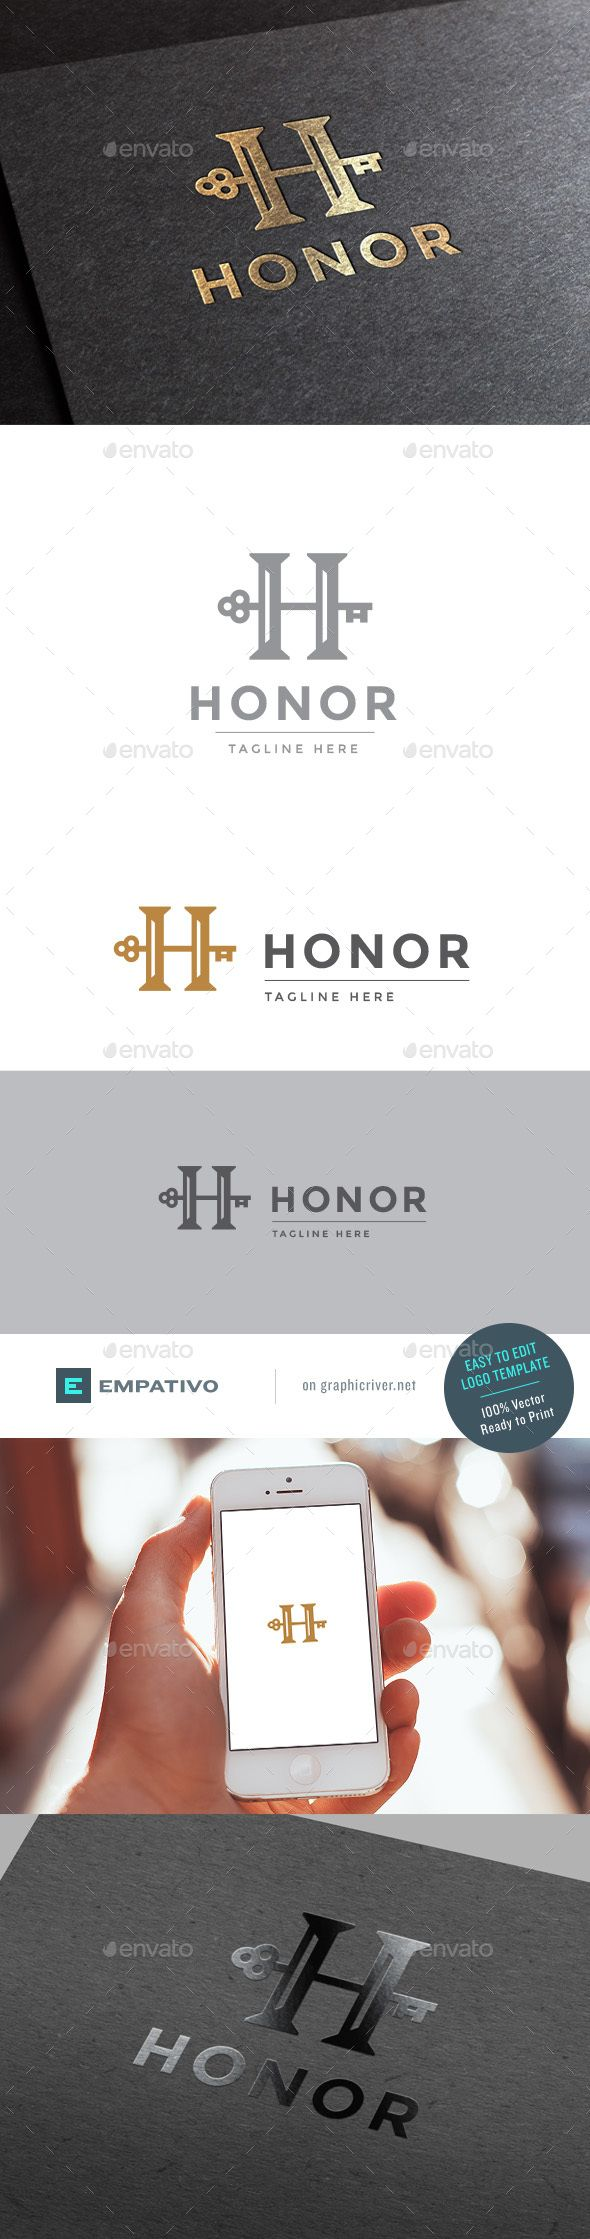 Honor Letter H Logo Template — Vector EPS #metallic #luxury hotel • Available here → https://graphicriver.net/item/honor-letter-h-logo-template/15679033?ref=pxcr